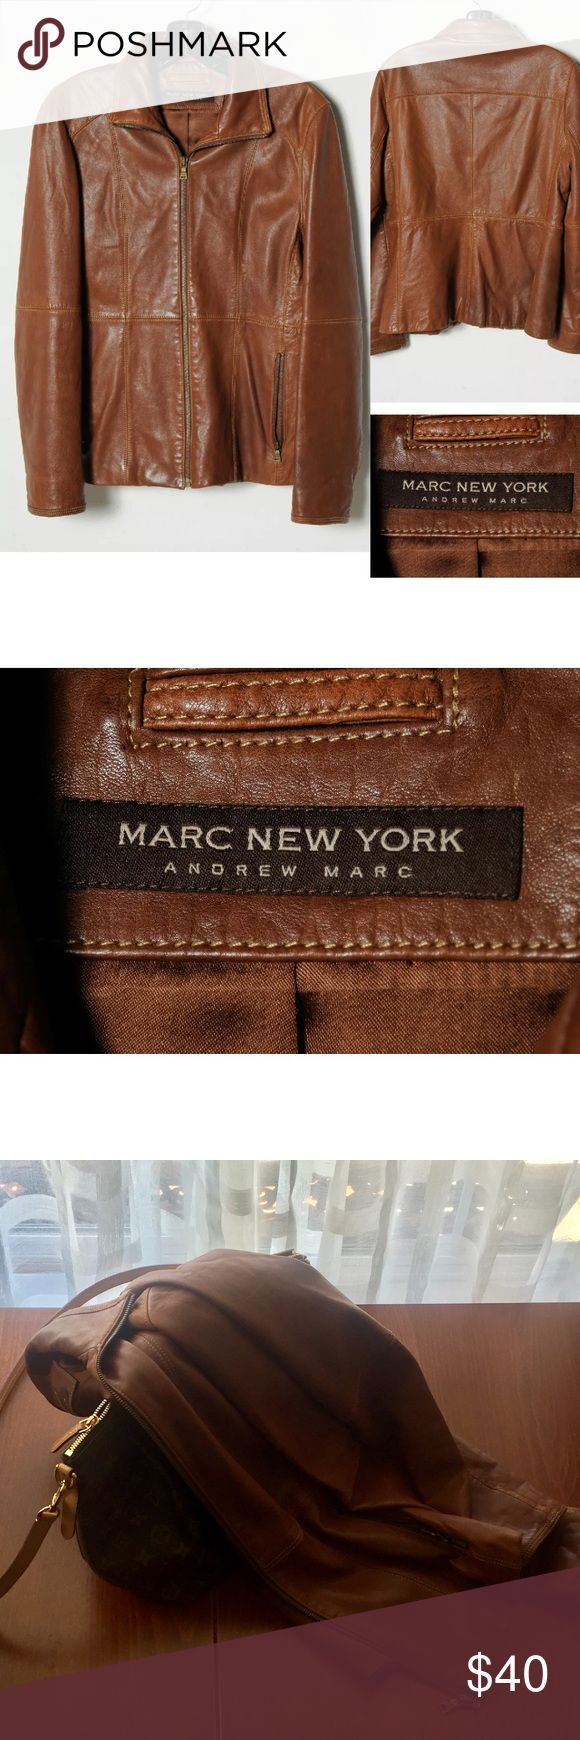 Marc New York $595 Leather Jacket whisky High-end leather jacket. It was retailed for roughly $600. Soft leather, feels great to the touch. Faded color here and there as real leather supposed to be. Very comfortable fit. Not too light nor too heavy. No major damage. Offer great price to serious buyer to enjoy it - for sure it will last for many seasons more to come. Smoke free pet free home. Ready to ship! andrew marc new york Jackets & Coats Blazers